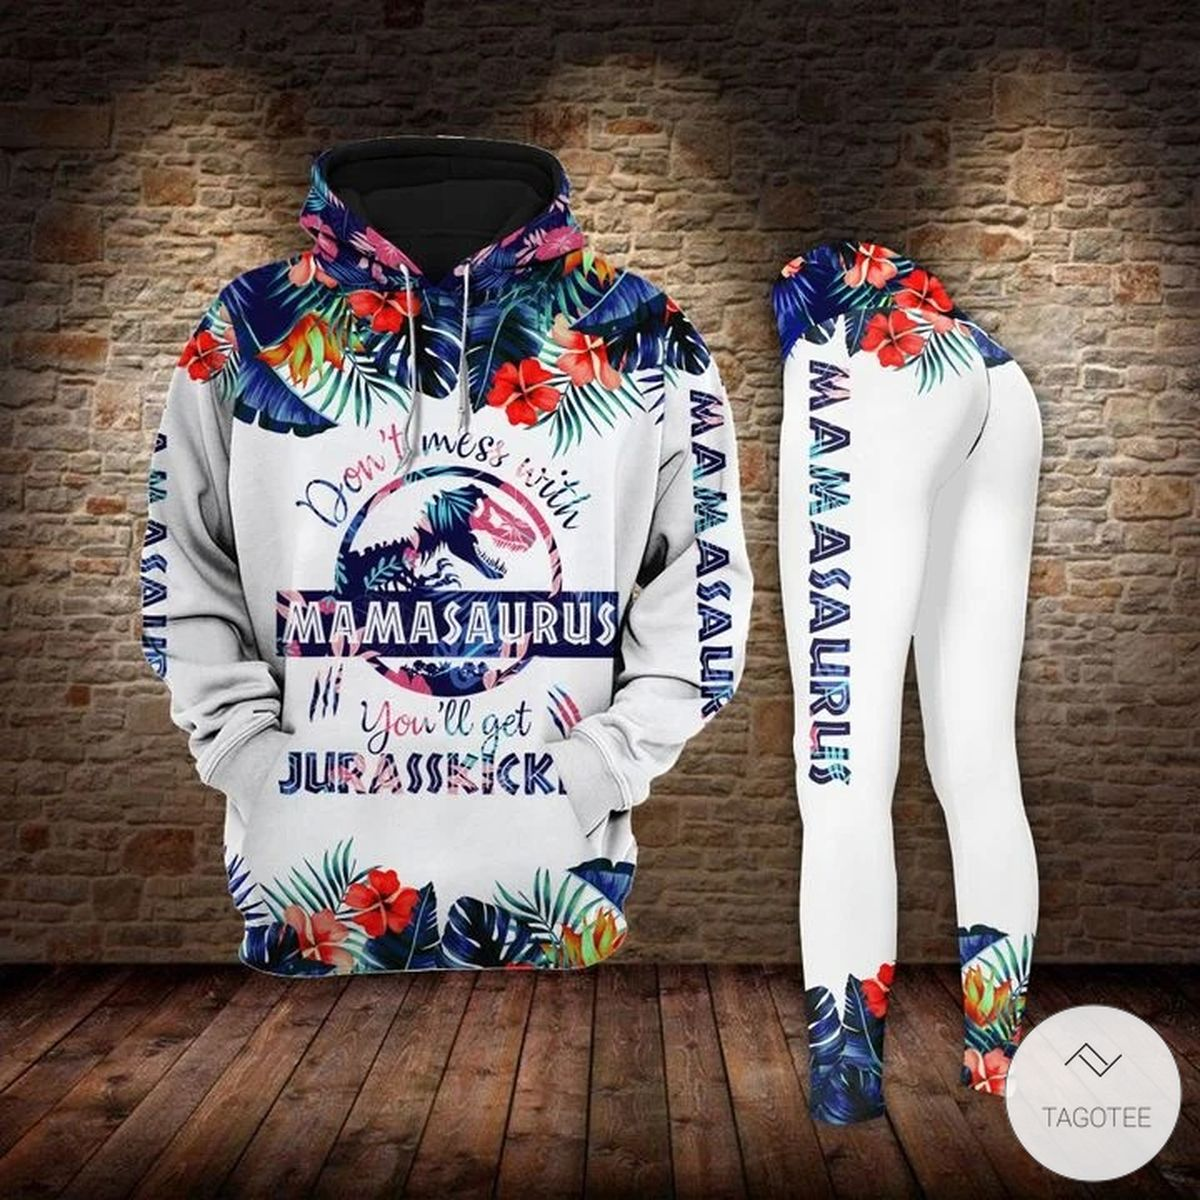 Don't mess with mamasaurus you'll get jurasskicked floral 3D hoodie and leggingx